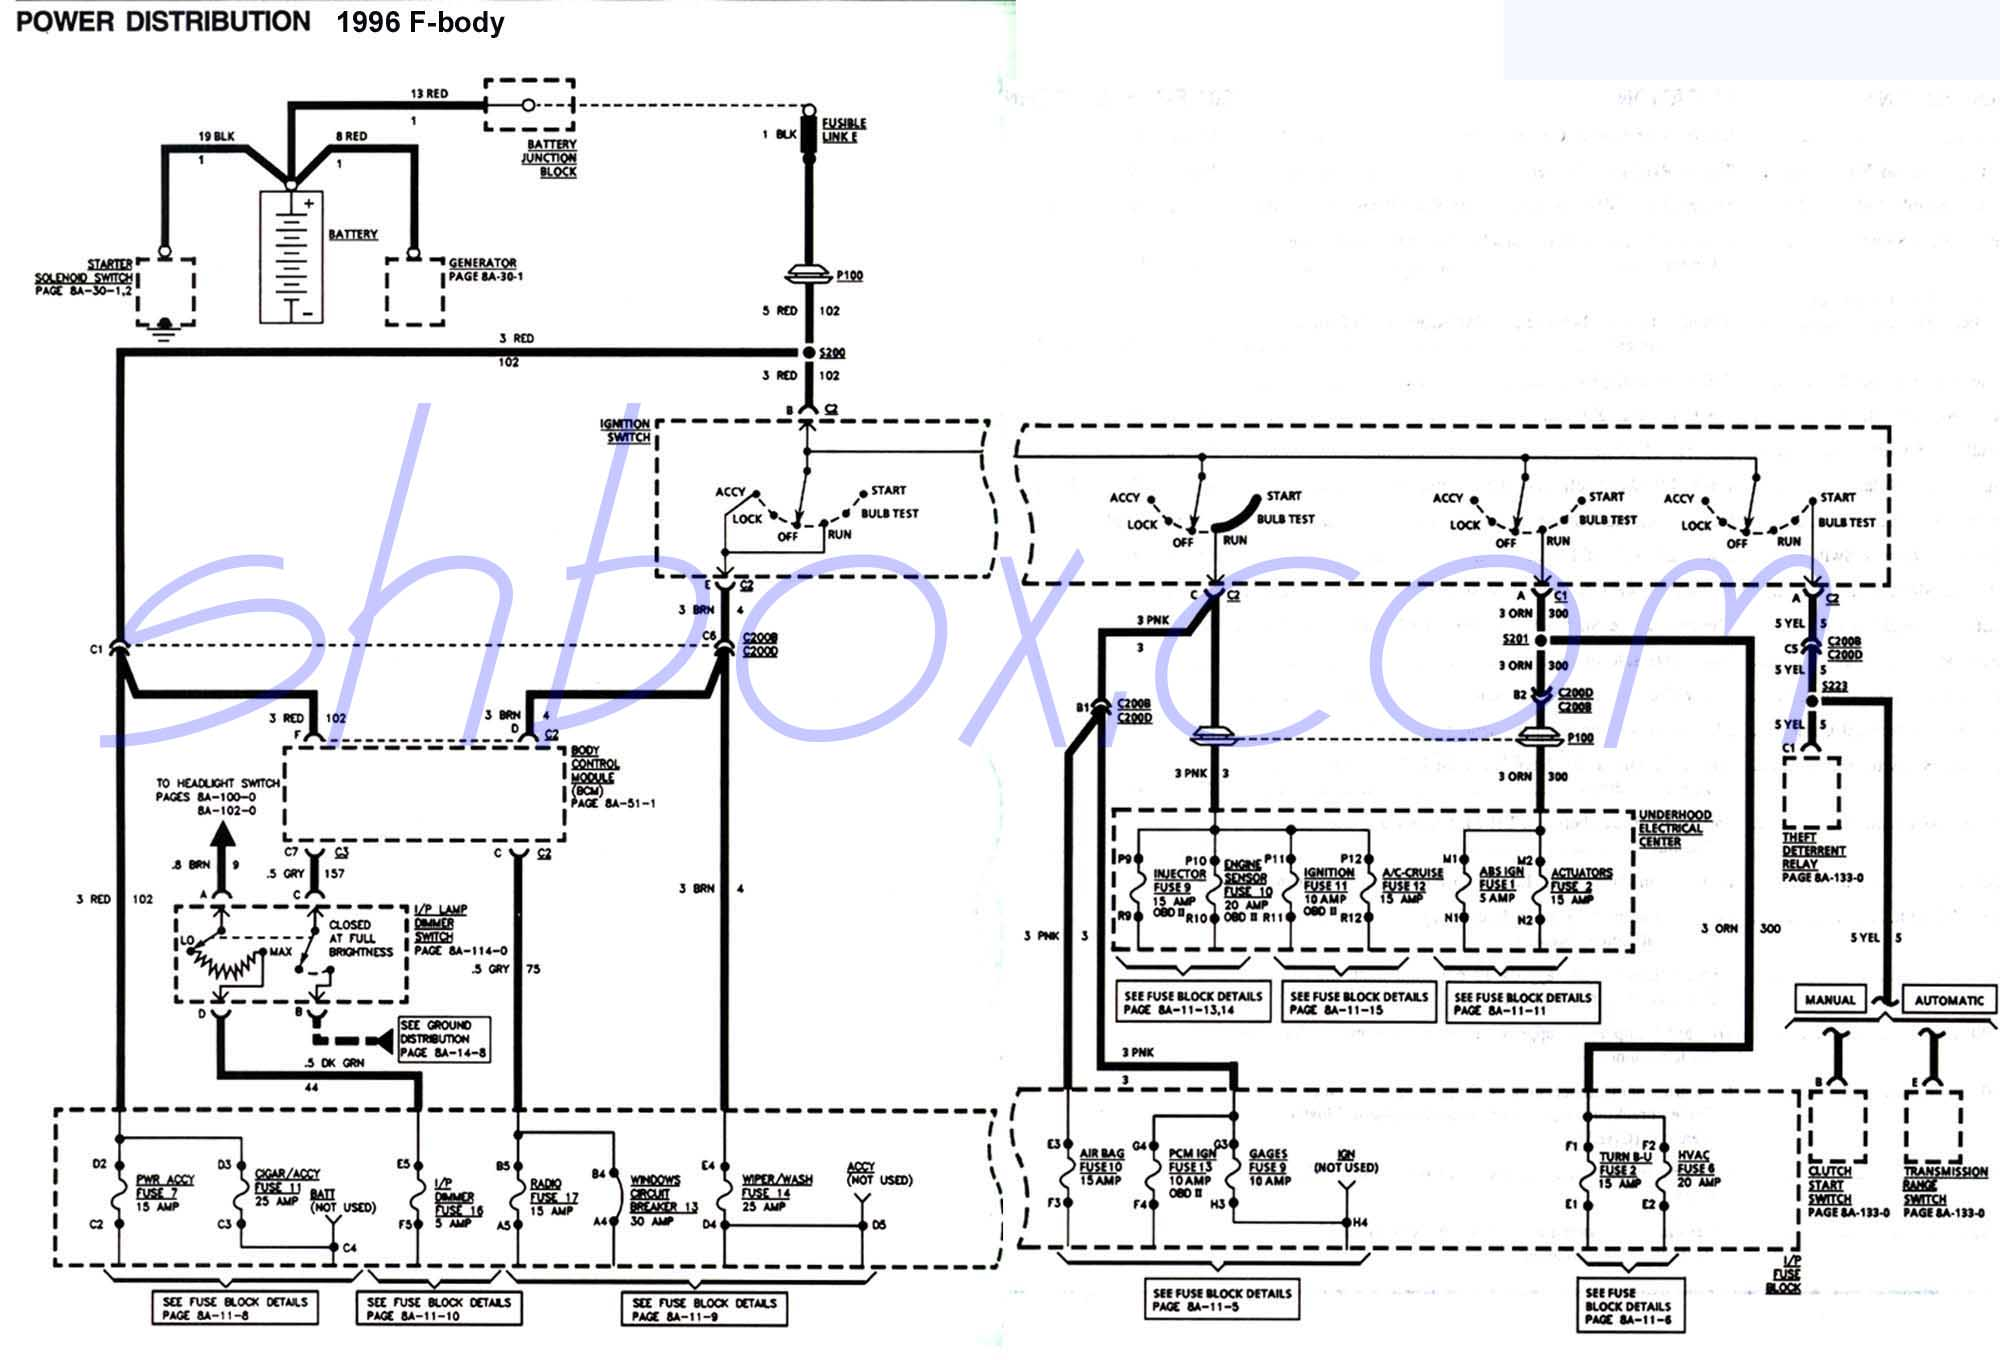 1972 chevy truck wiring diagram 1972 image wiring wiring diagram for 1972 chevy truck the wiring diagram on 1972 chevy truck wiring diagram